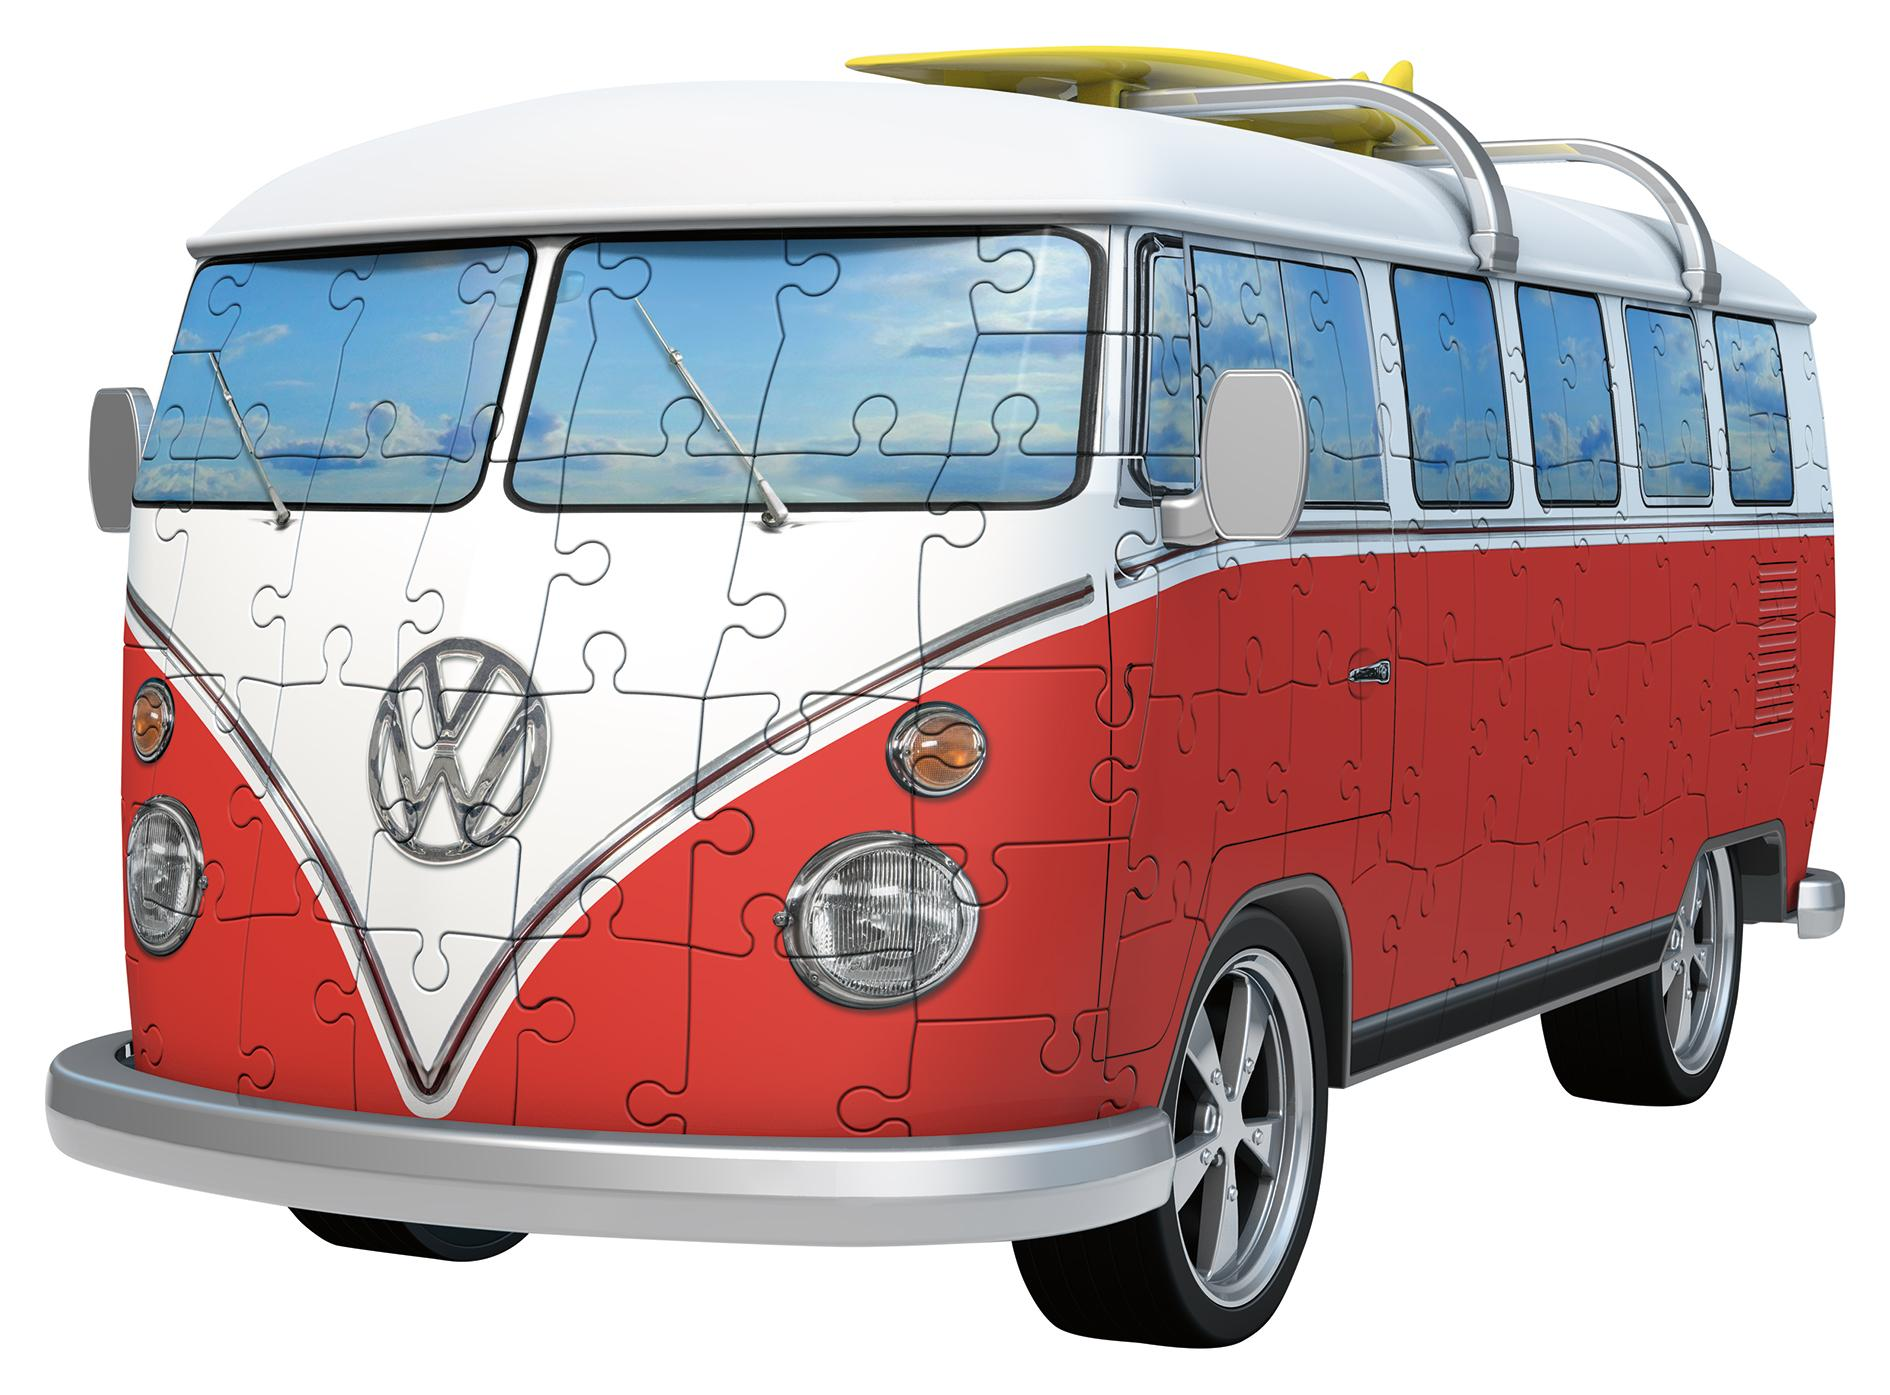 Vw Campervan Accessories >> Ravensburger VW T1 Camper Van, 162pc 3D Jigsaw Puzzle: Ravensburger: Amazon.co.uk: Toys & Games